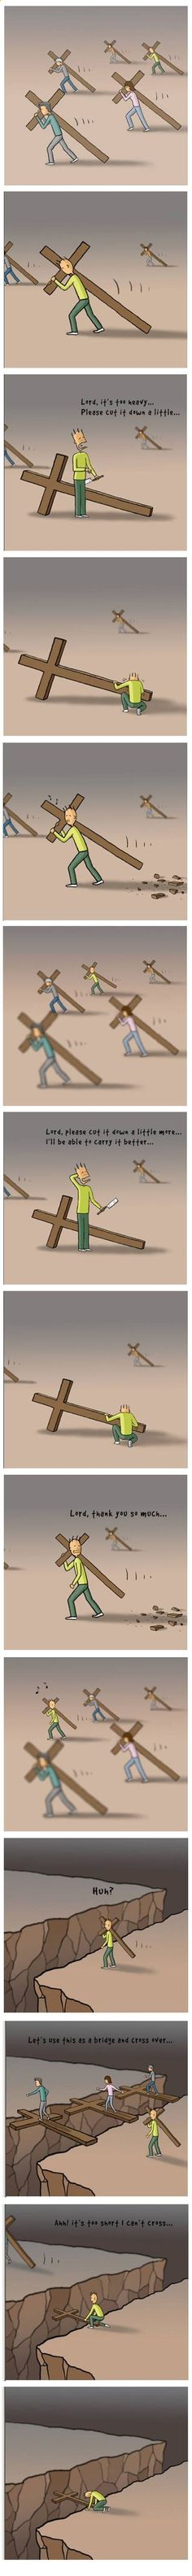 Sometimes we complain about the cross we bear, not realizing that its preparing us for the dip in the road that God can see and we cannotThis is eye opening!